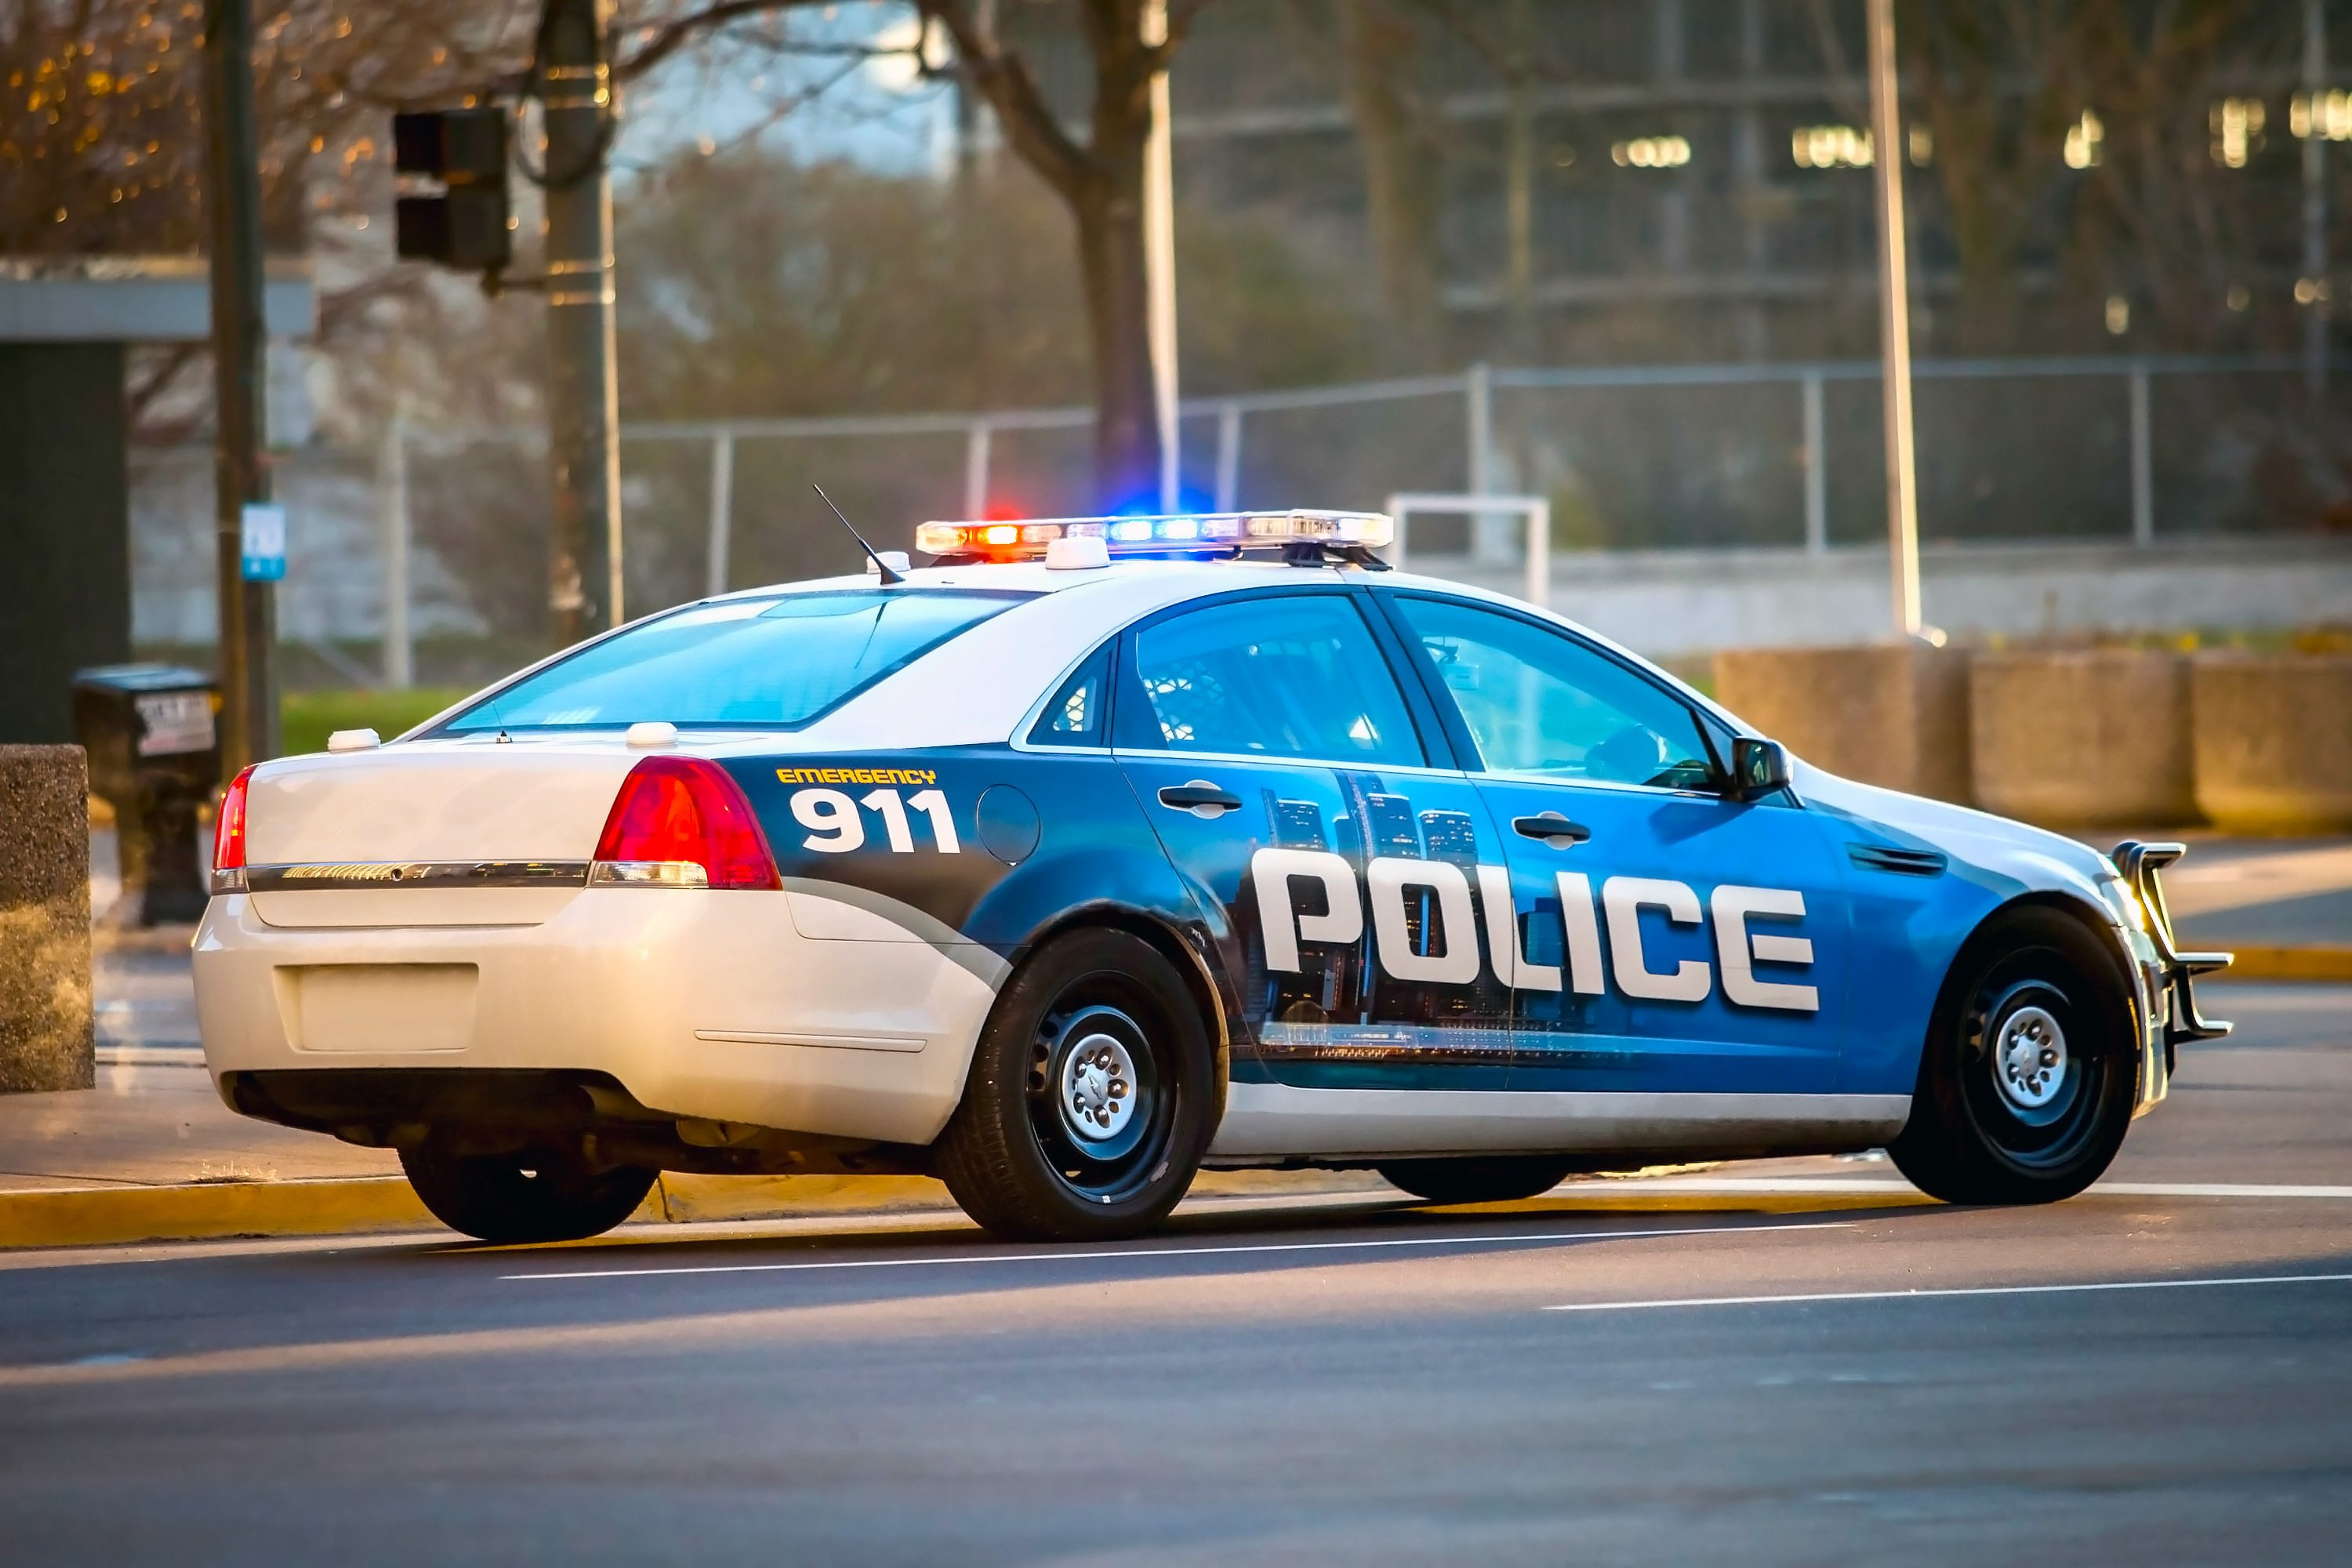 A police car pictured in a neighborhood street. | Photo: Shutterstock